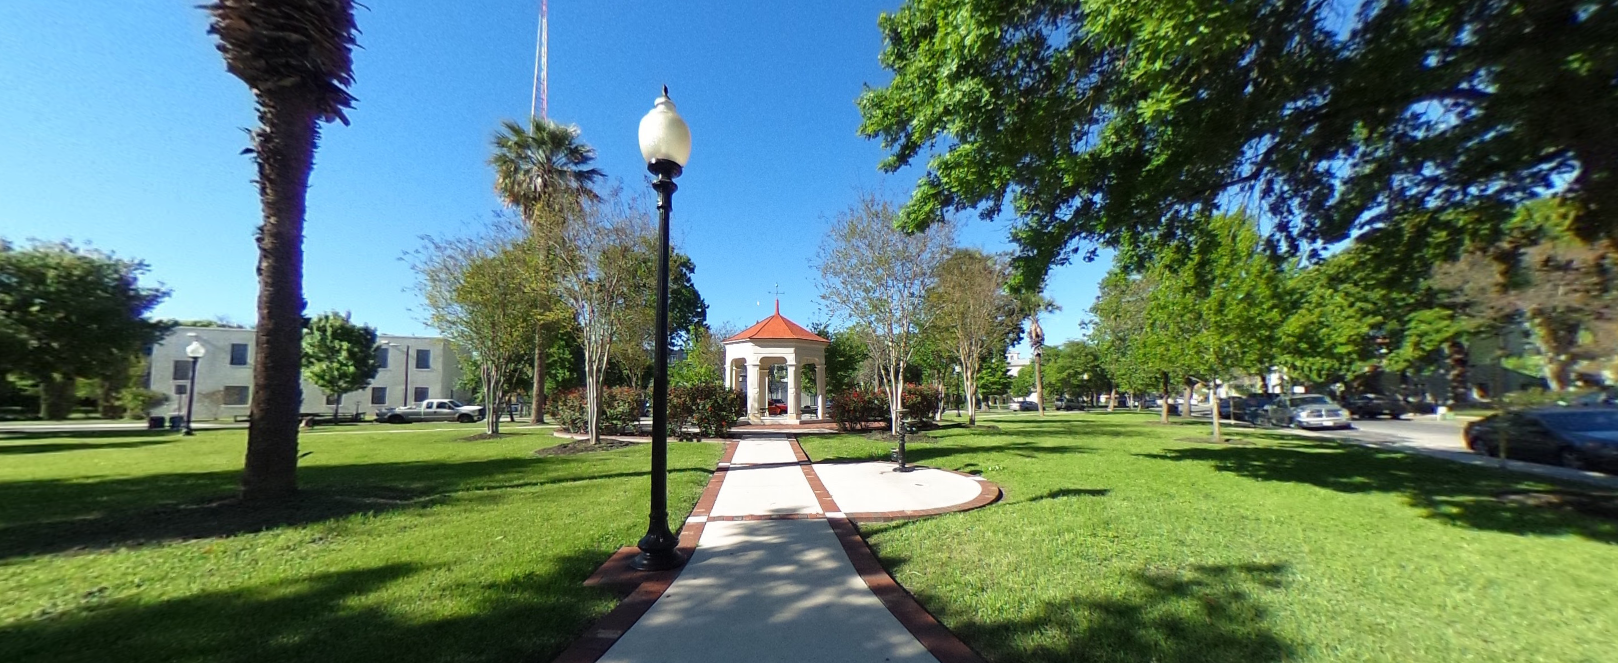 CITY OF SAN ANTONIO (KING WILLIAM PARK) - Google Business View Photosphere